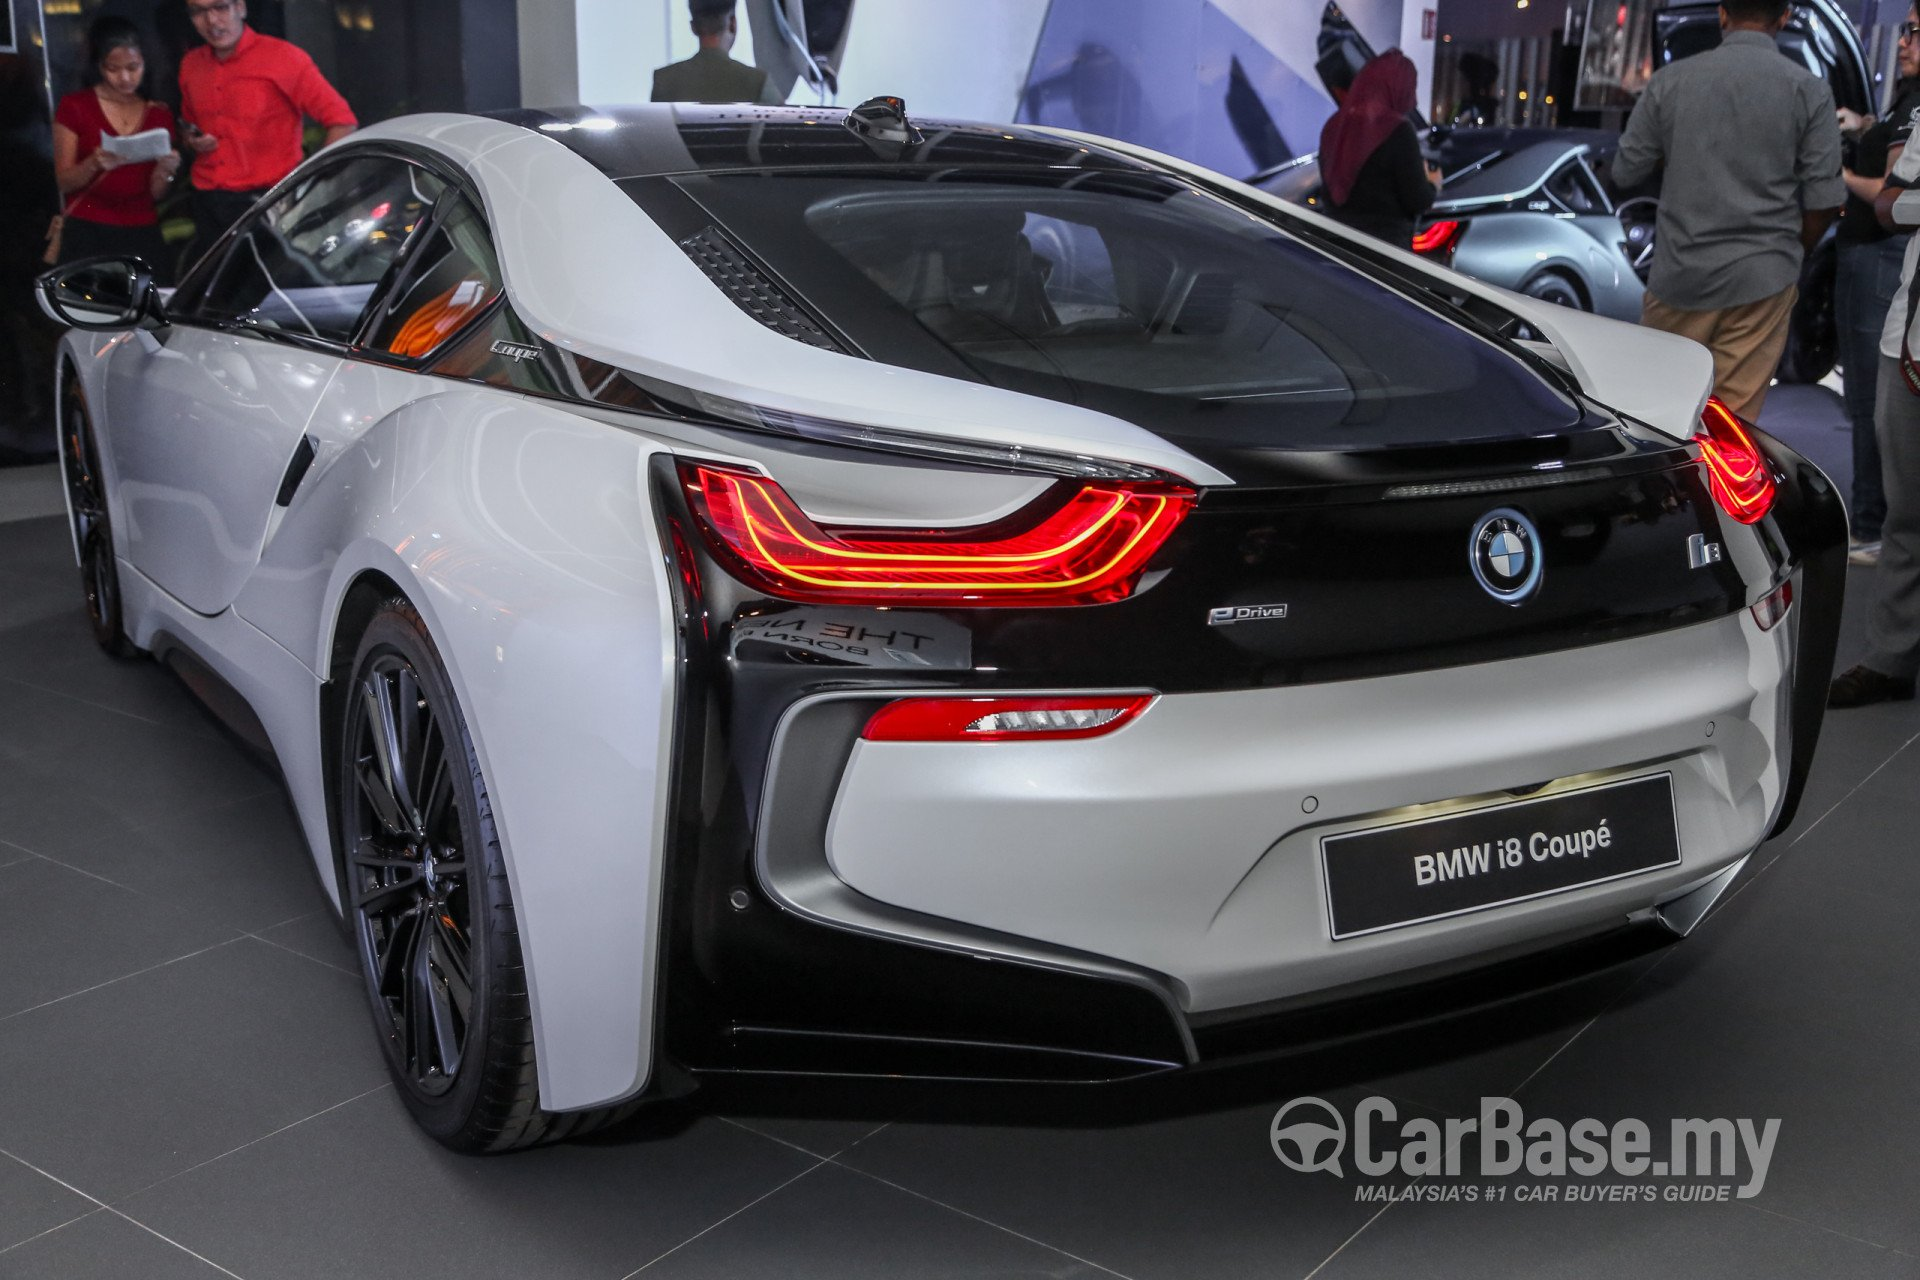 Bmw I8 Coupe I12 Lci 2018 Exterior Image 50514 In Malaysia